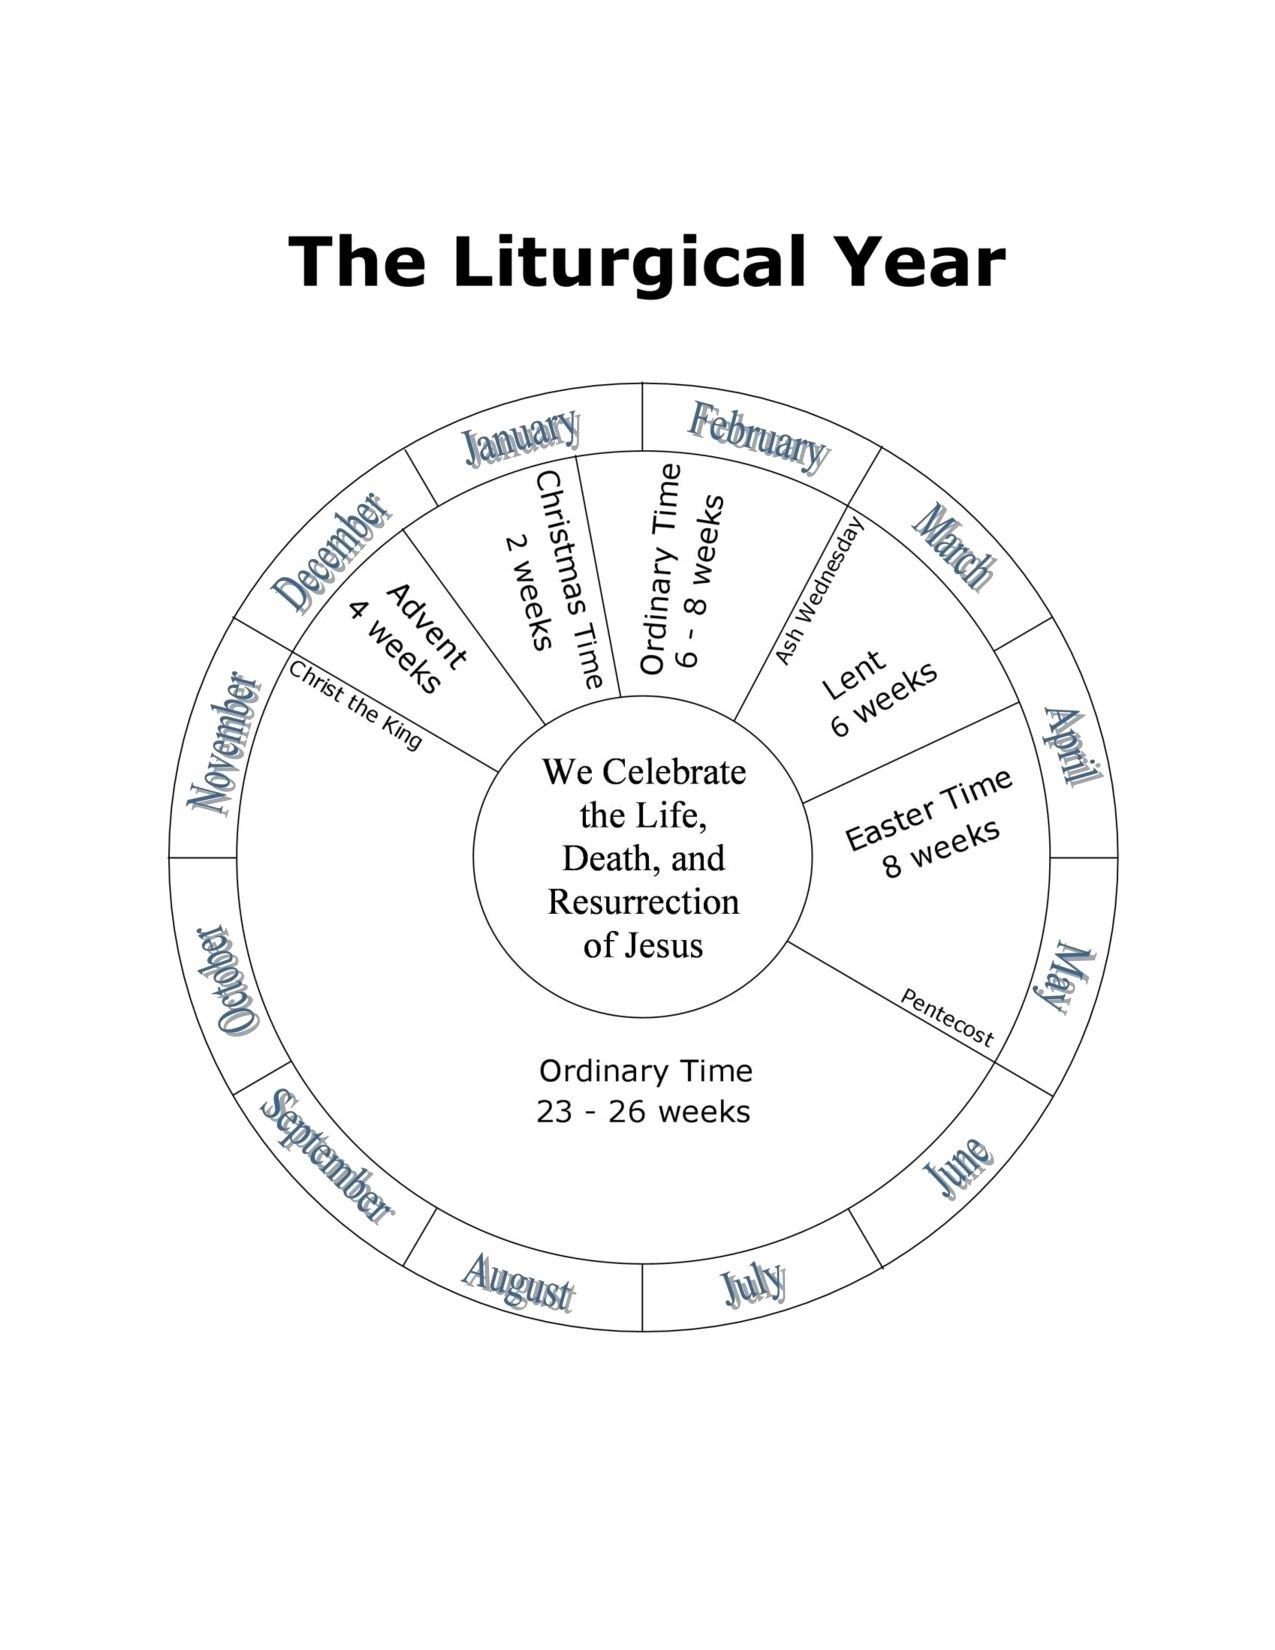 Year C Catholic Calendar In 2020 | Catholic Liturgical intended for Catholic Liturgical Monthly Calendar 2020